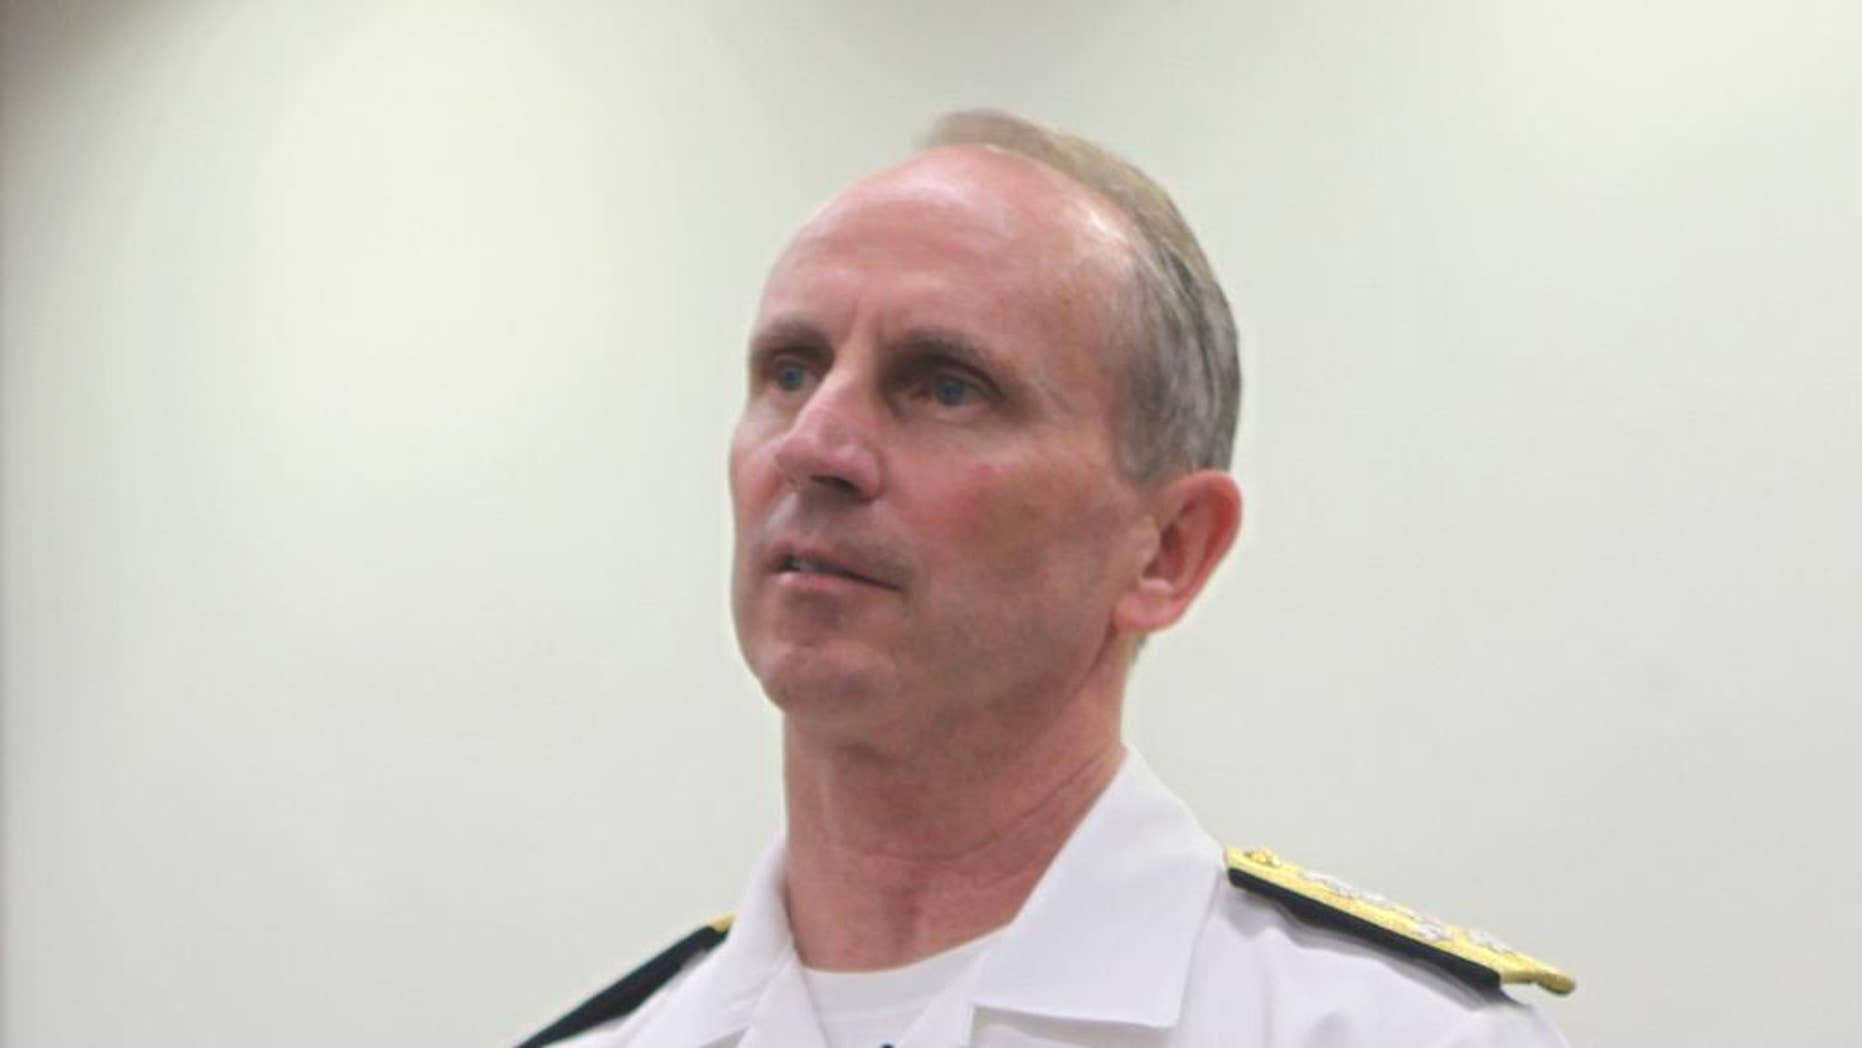 In this photo released by the Australian National University, U.S. Navy Adm. Jonathan Greenert speaks during a lecture at the ANU in Canberra, Australia Tuesday, Feb. 10, 2015. Greenert, who as chief of Naval Operations sets the navy's future strategy, said Tuesday lasers that shoot down drones with precision and electromagnetic cannons that fire more than 100 miles are part of the future of naval warfare, promising to be cheaper to use than conventional weapons. (AP Photo/The Australian National University, Kate Hulm)